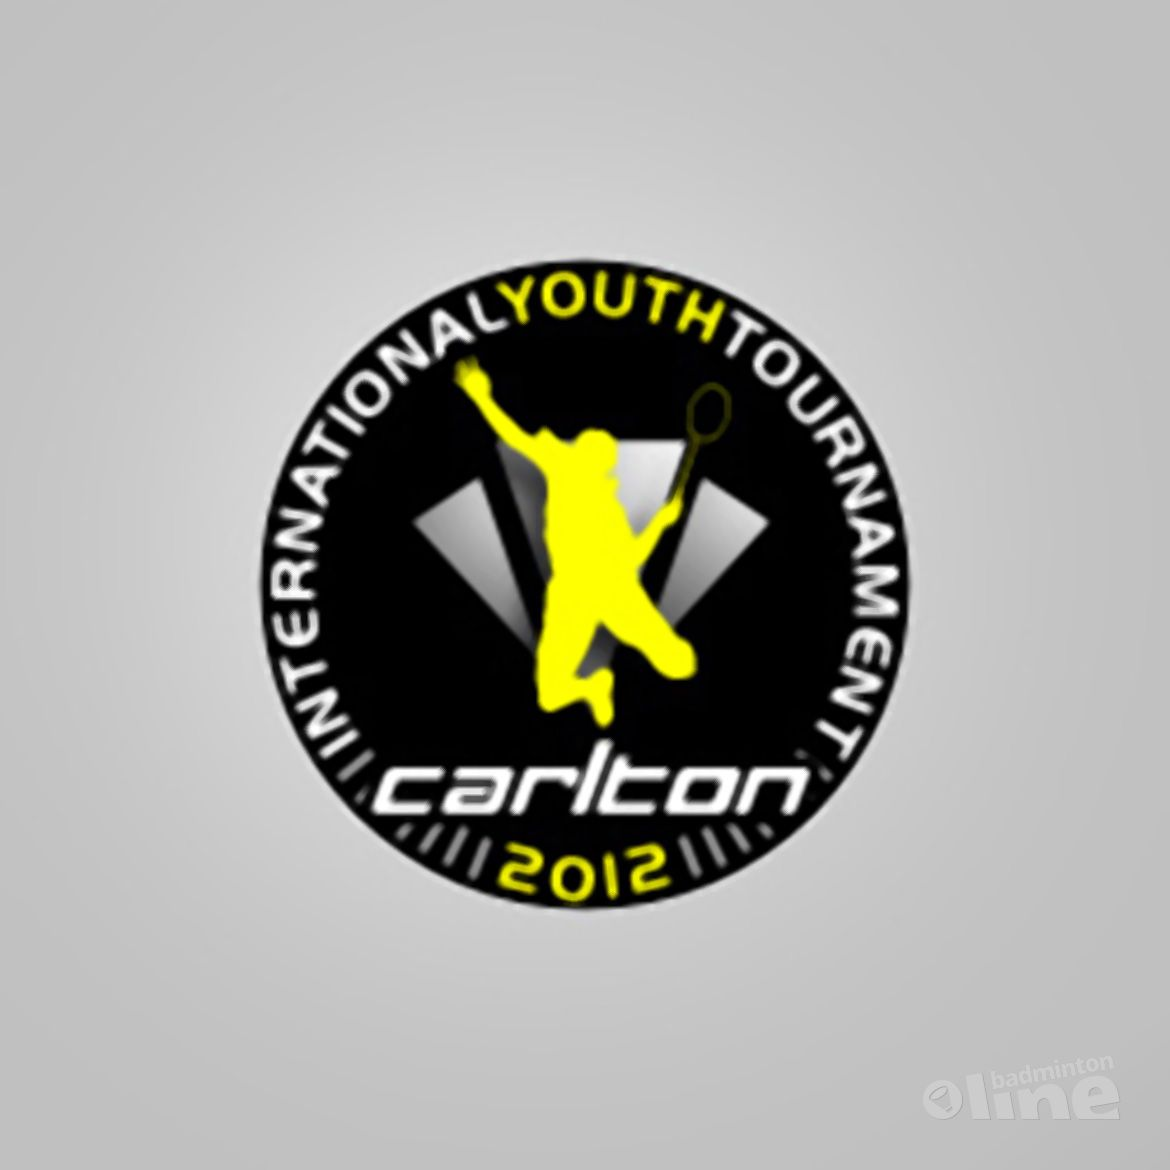 Overzicht eerste dag Carlton International Youth Tournament